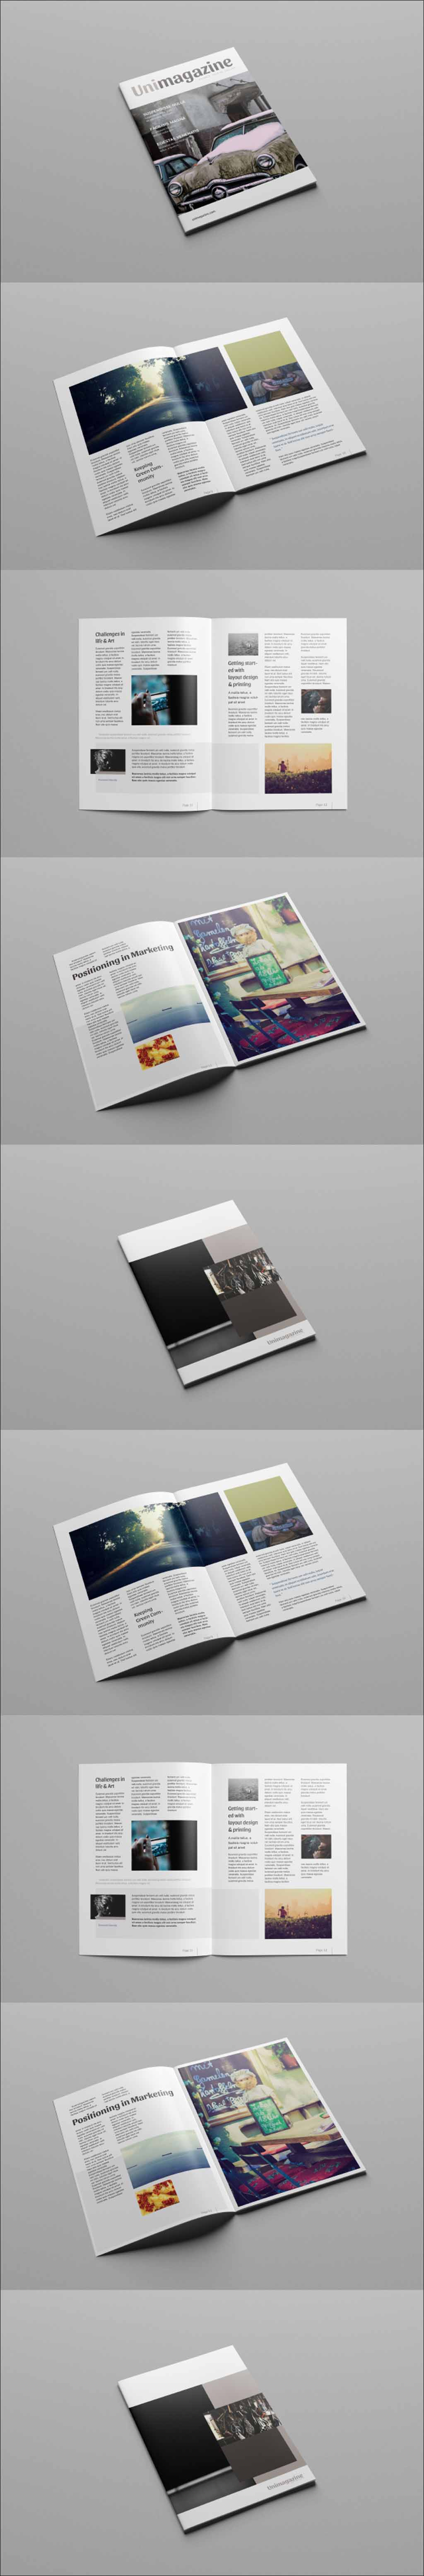 Free Psd Magazine Brochure Template A  Column Grid Magazine